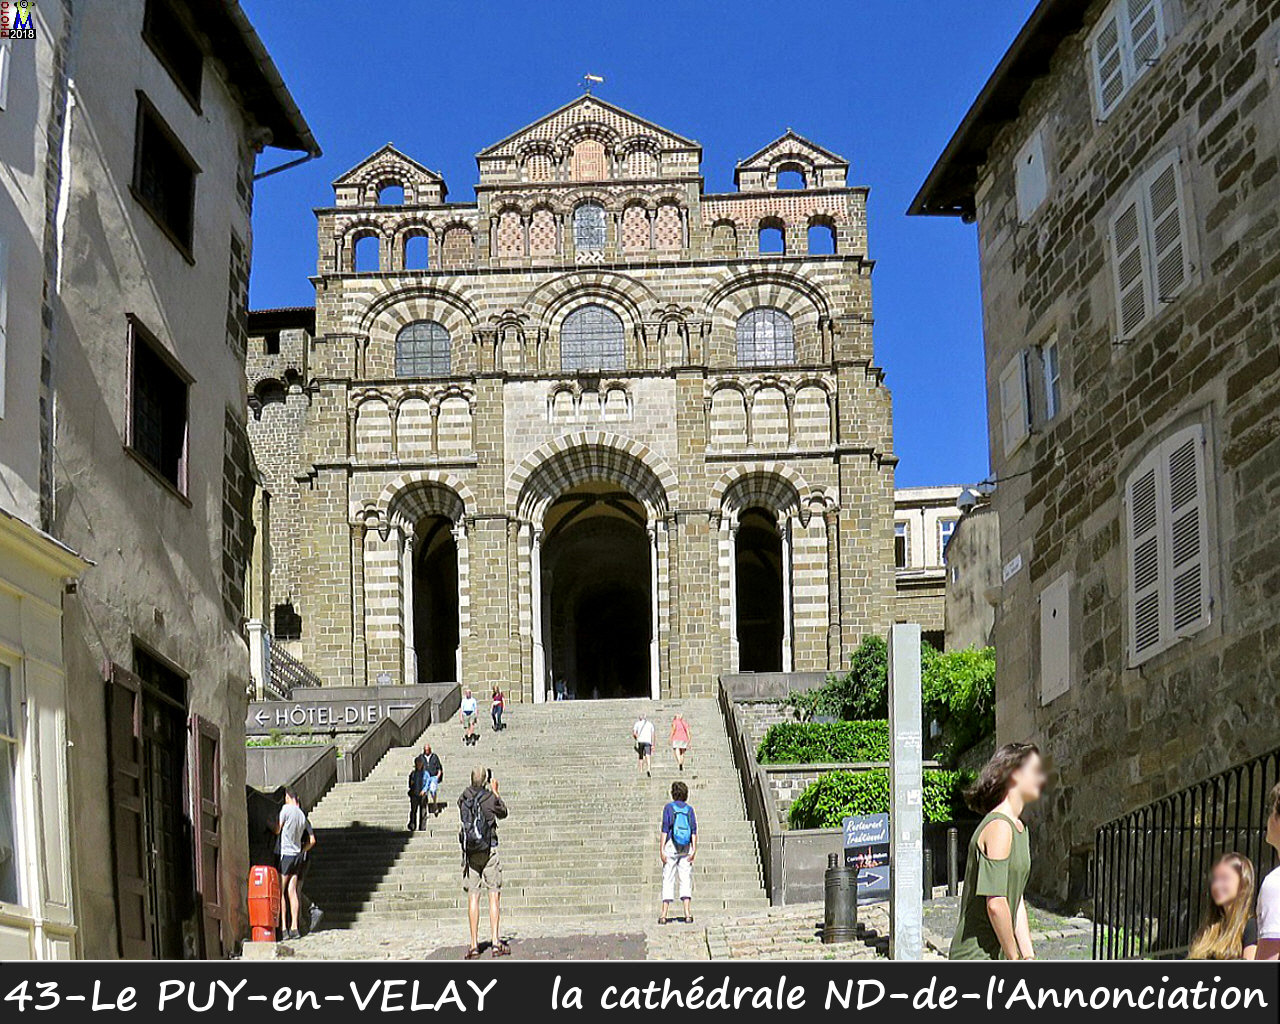 43PUY-EN-VELAY_cathedrale_110.jpg